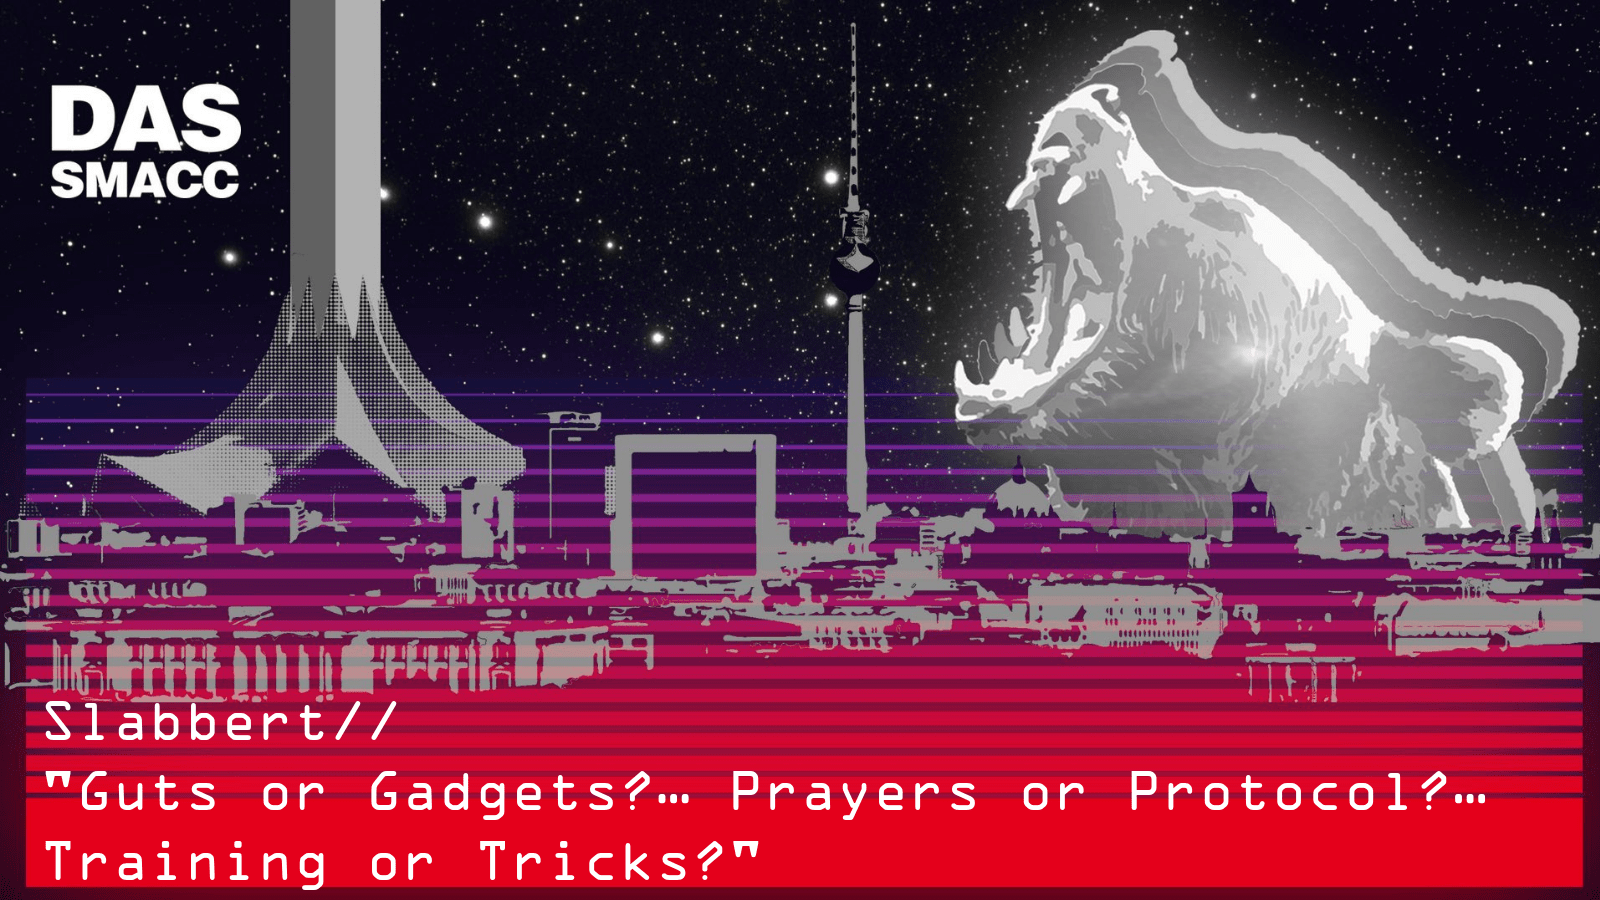 Guts or Gadgets?… Prayers or Protocol?… Training or Tricks?